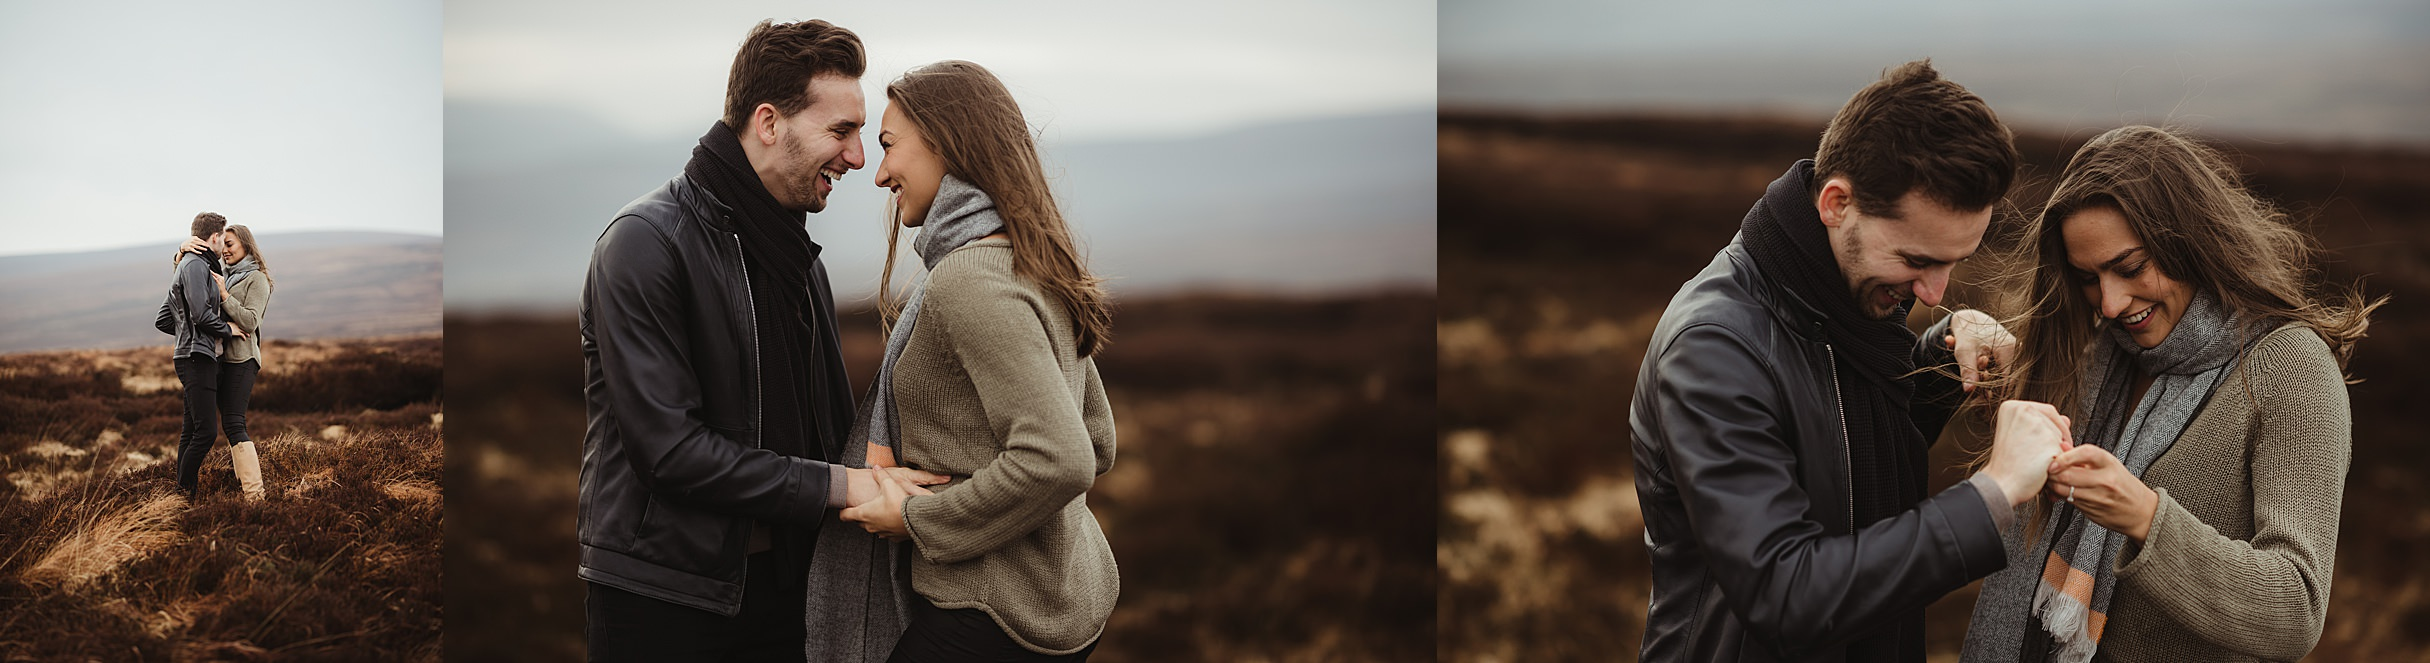 Wicklow-Mountains-Engagement-Dublin-Photographer-Session-53.jpg